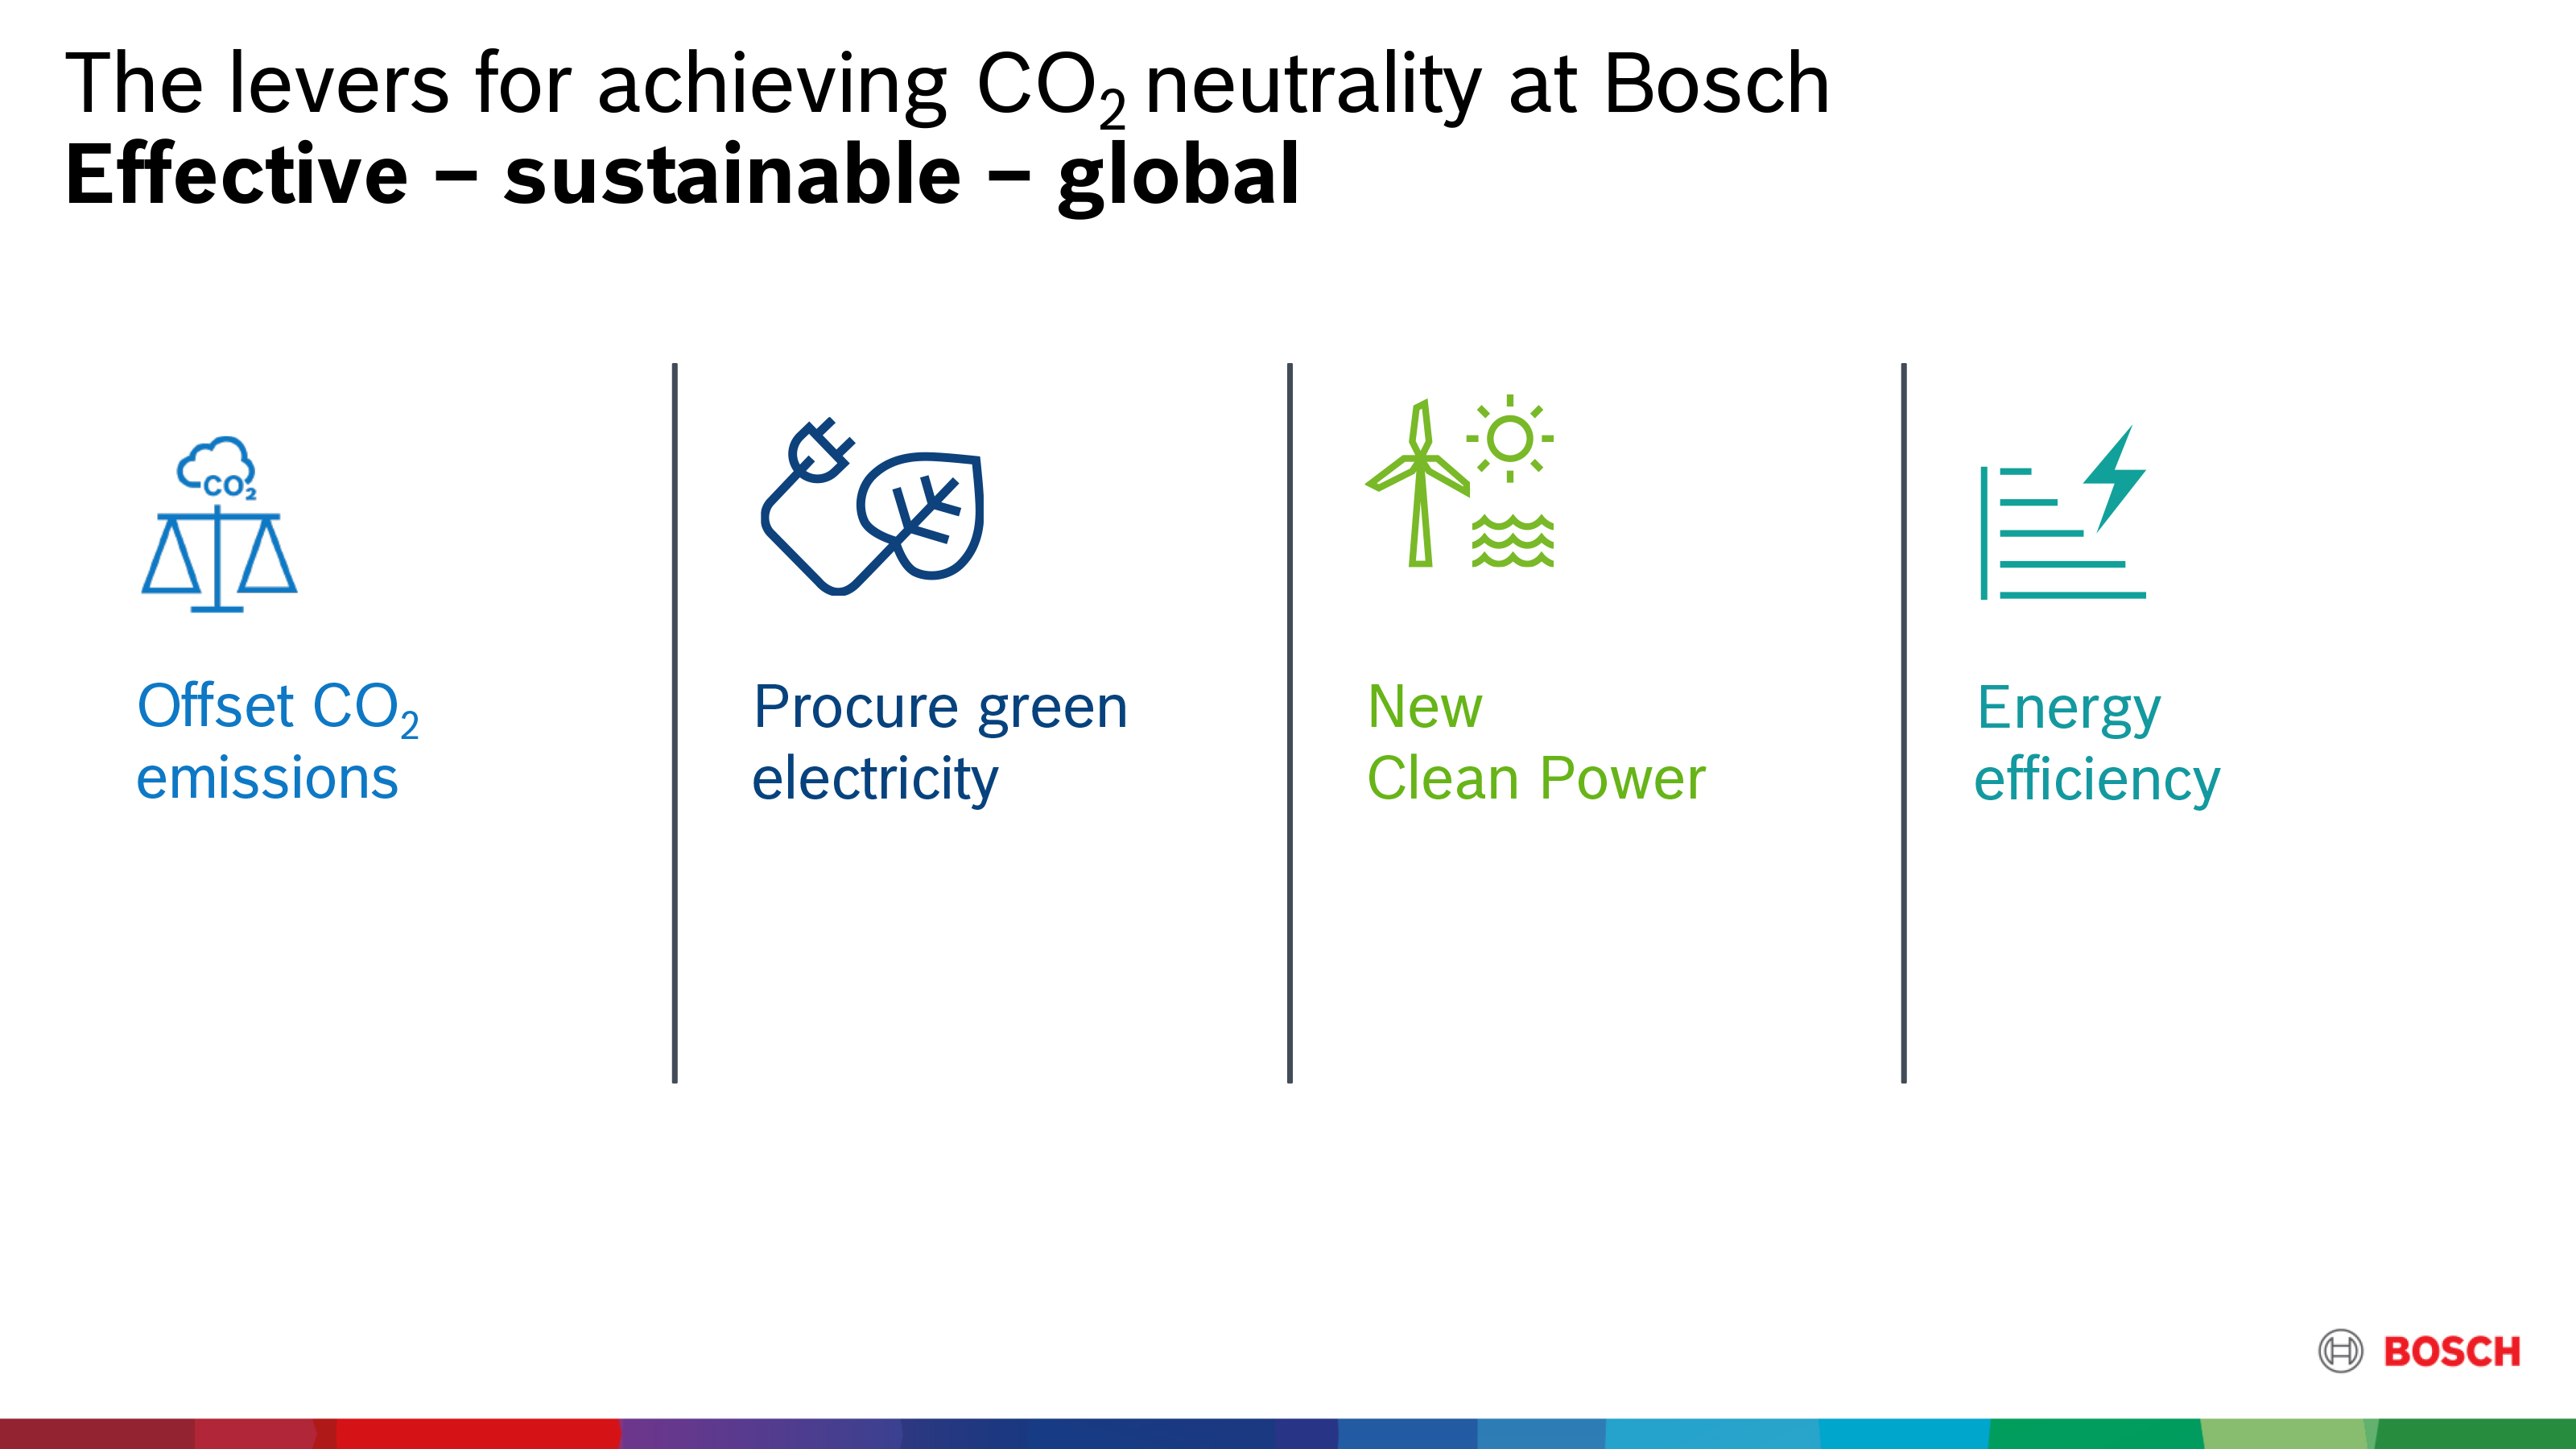 As alavancas para alcançar a neutralidade do CO₂ na Bosch